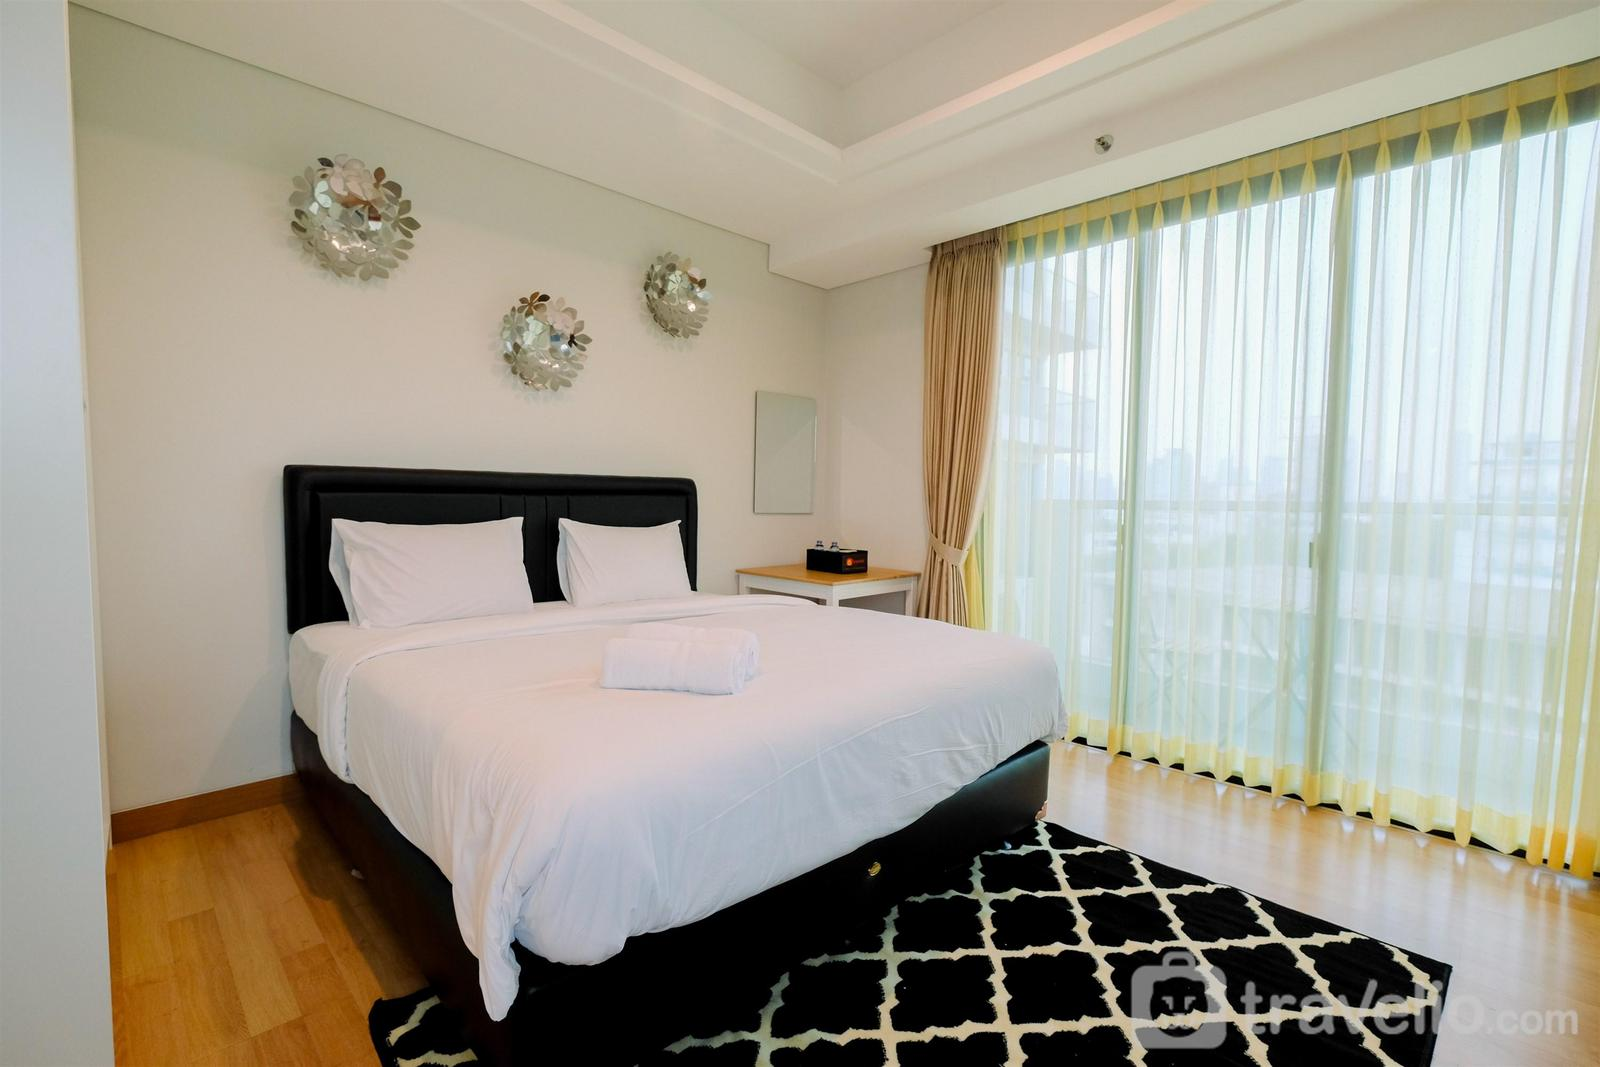 Capitol Suites - Monas View Studio Apartment at Capitol Suites By Travelio